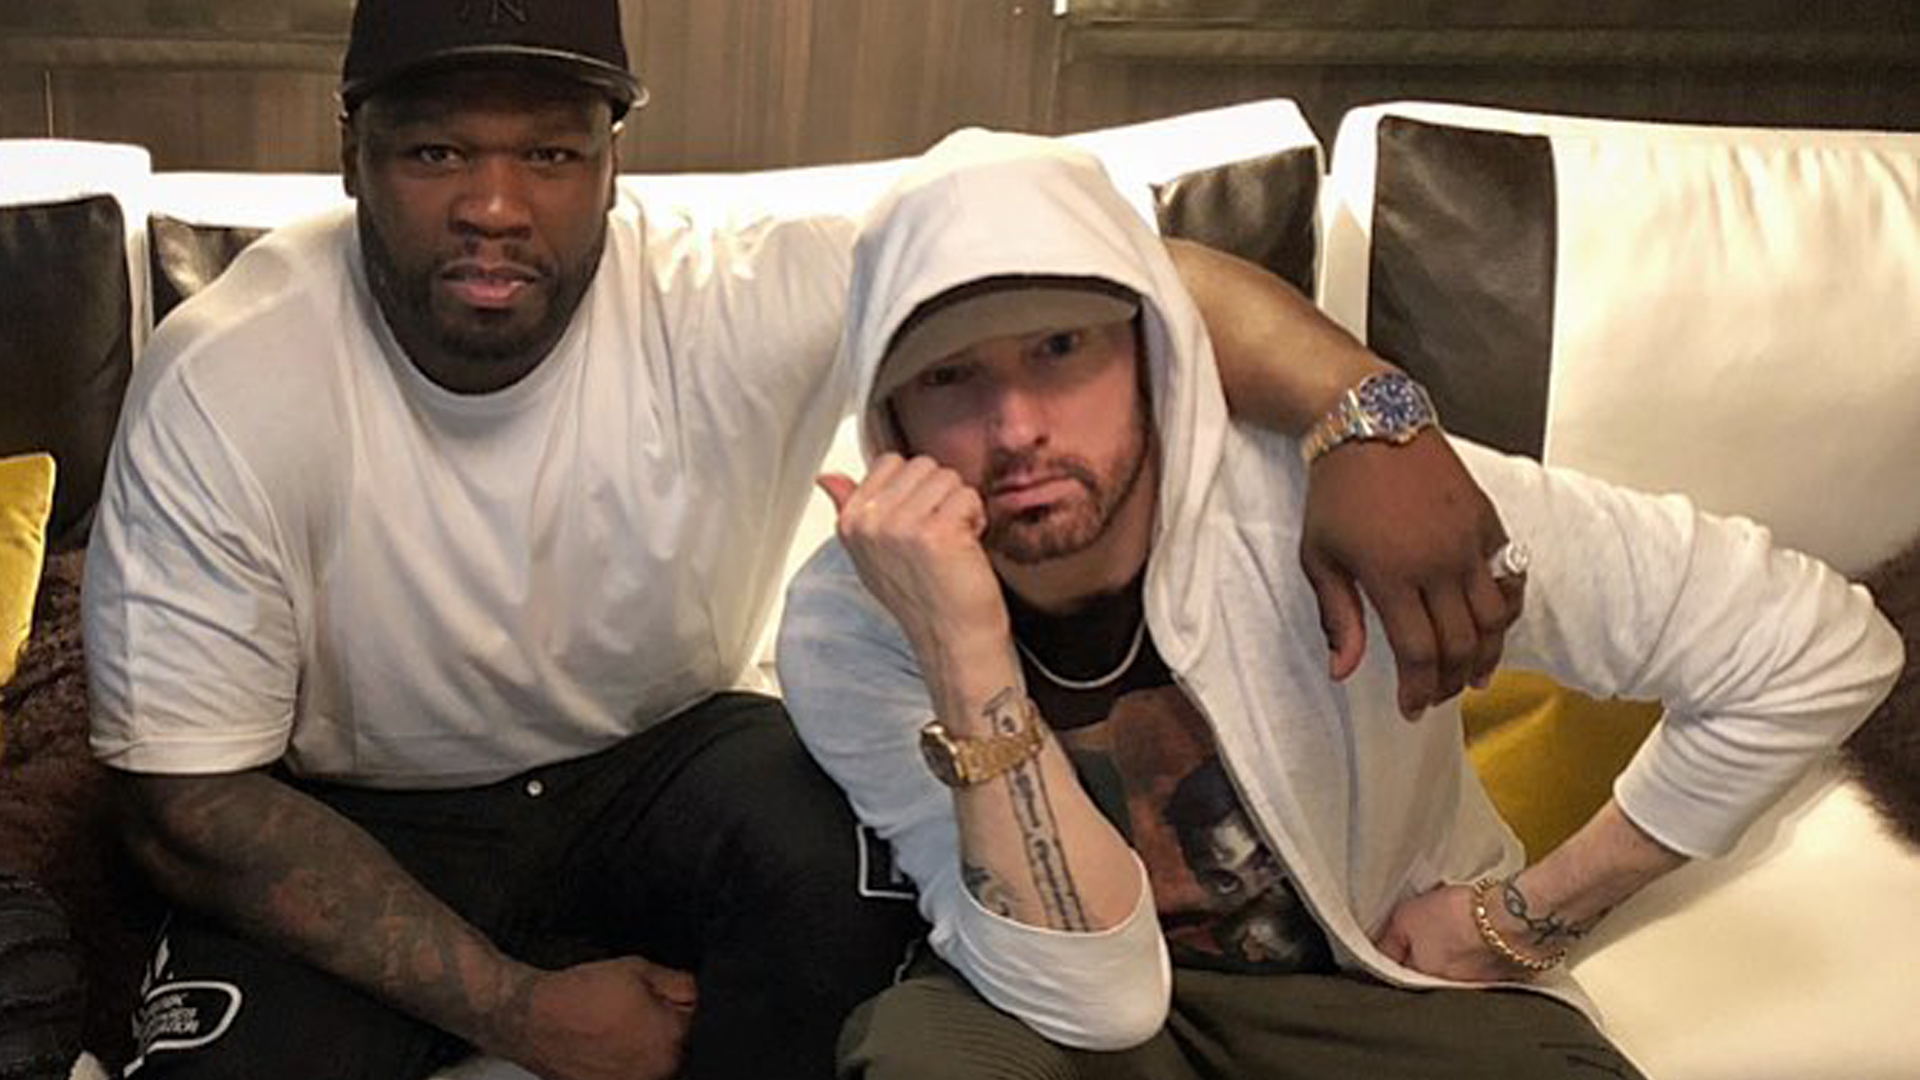 Eminem ft. 50 Cent - Pure power on stage in desert 🐐 (Multicam, Updated version)